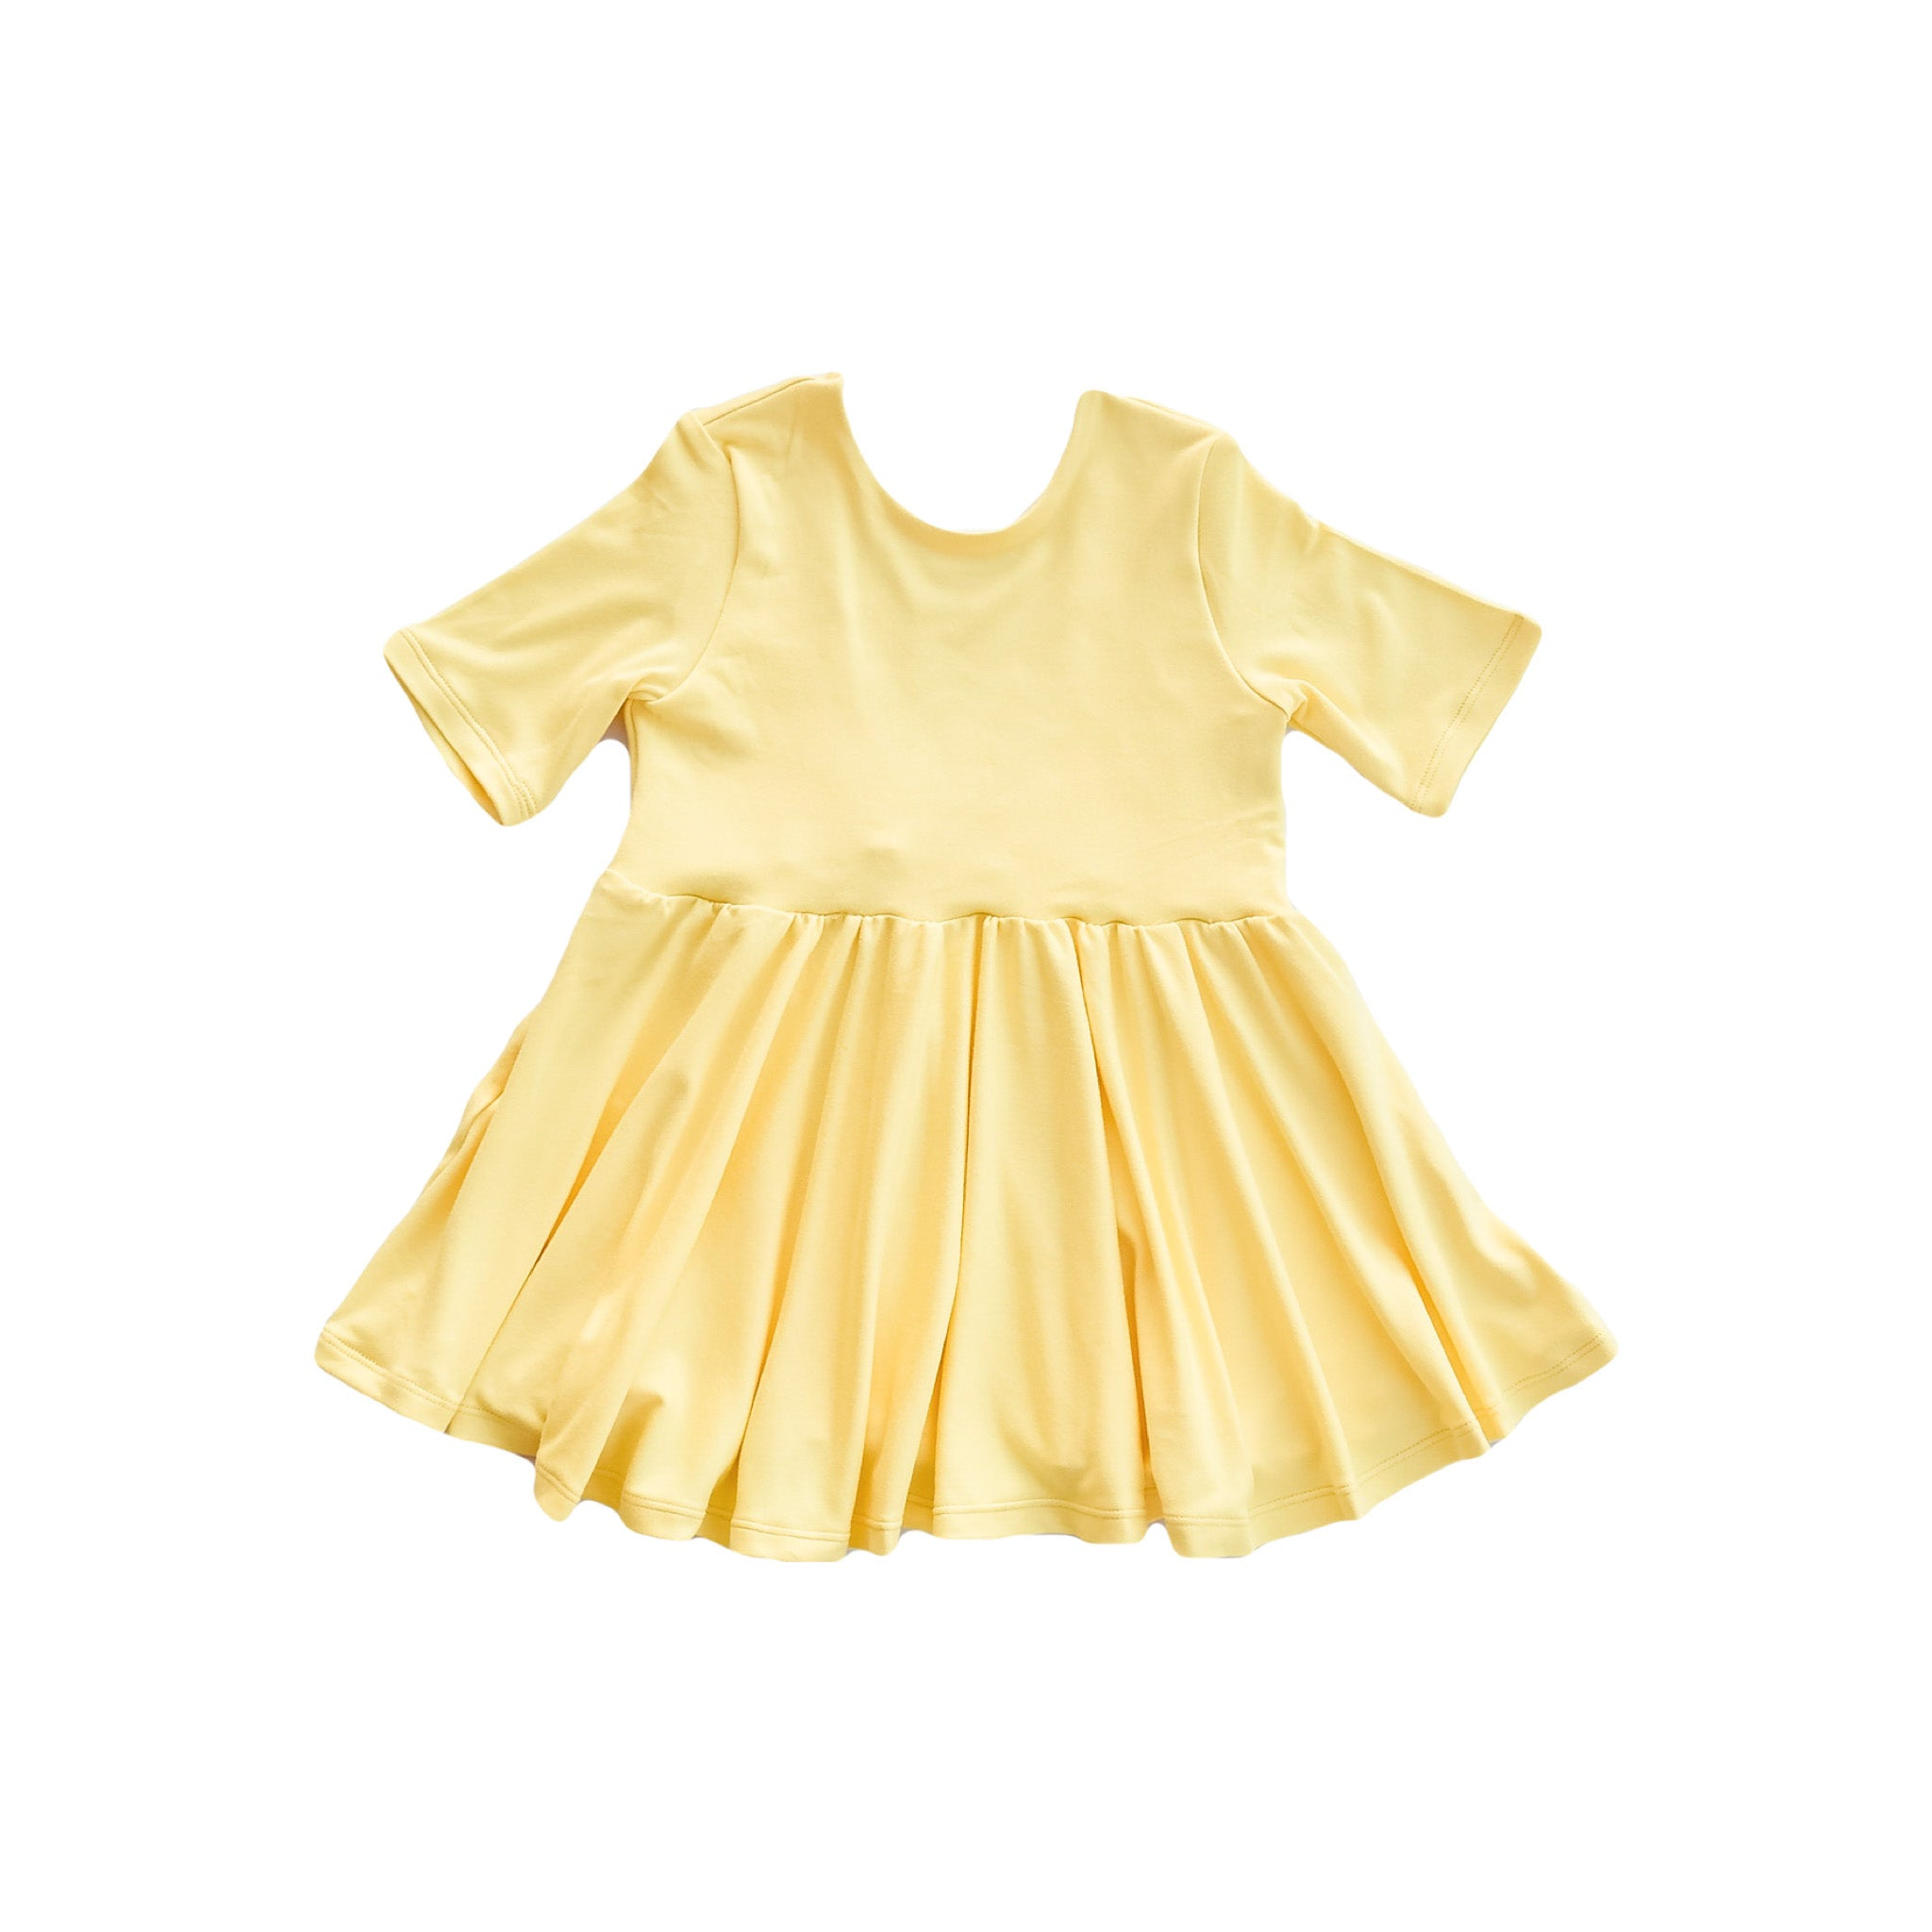 Baby Doll Top - Yellow